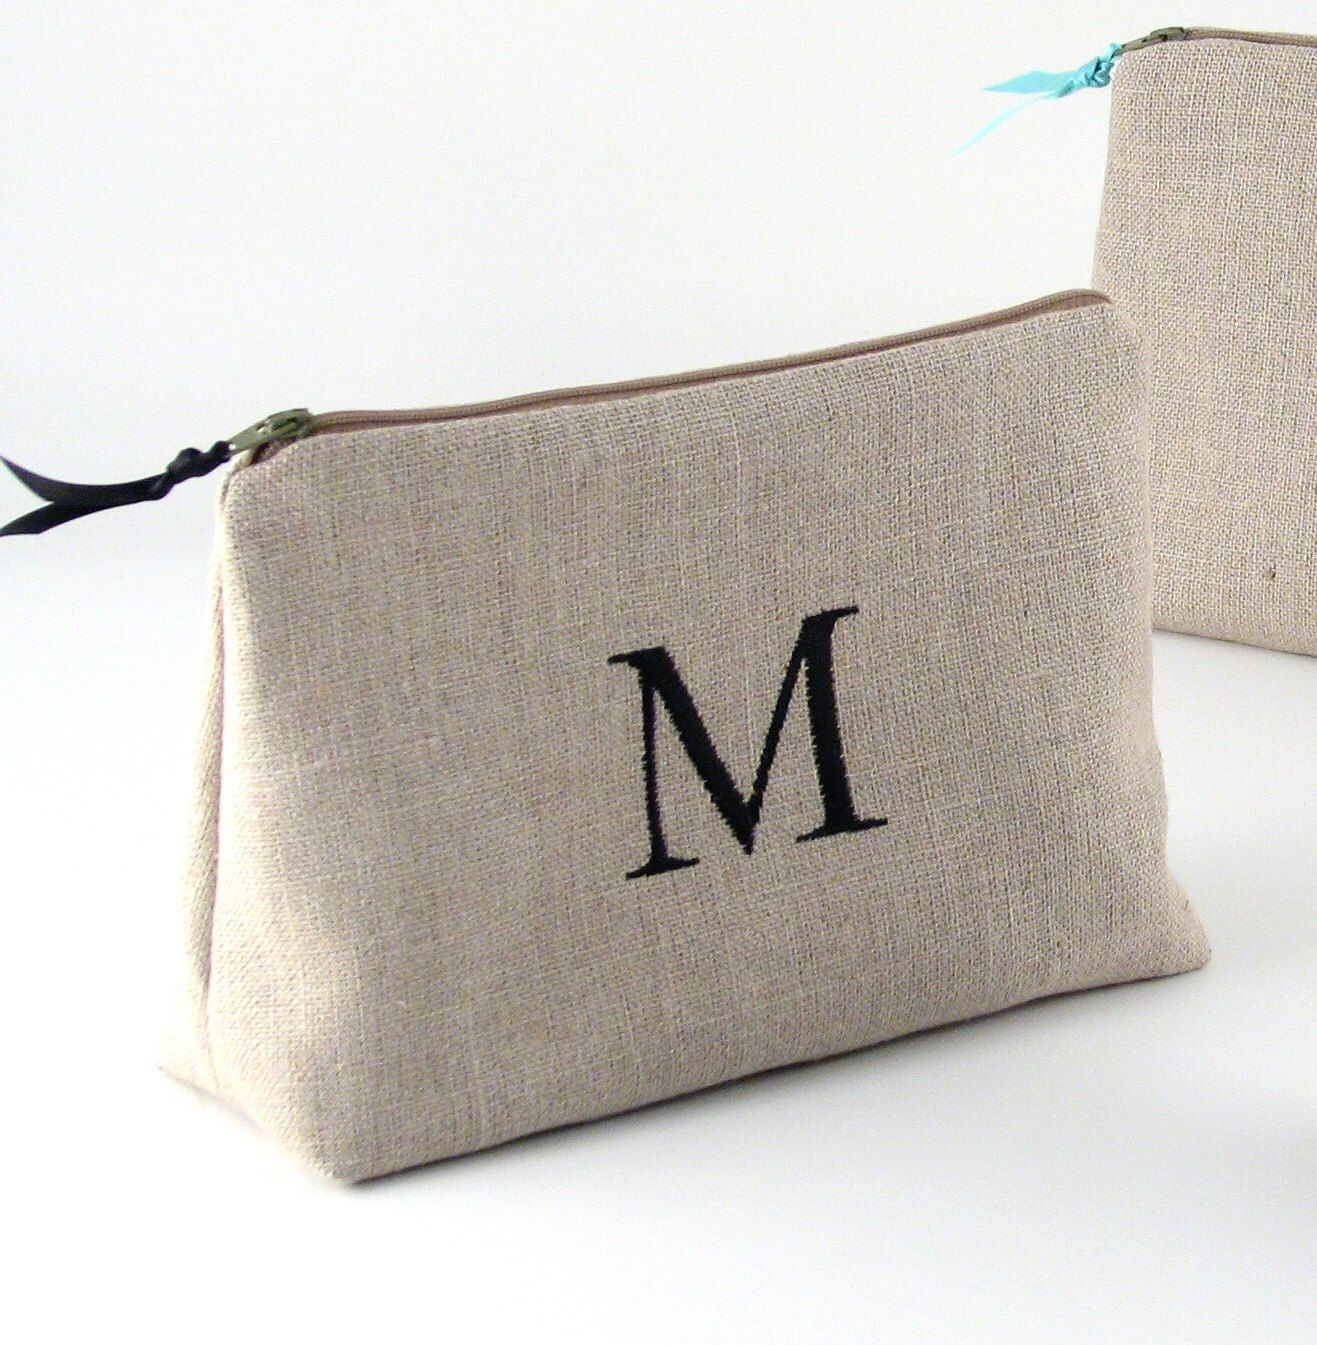 Personalized Linen Cosmetic Bag // Linen Clutch